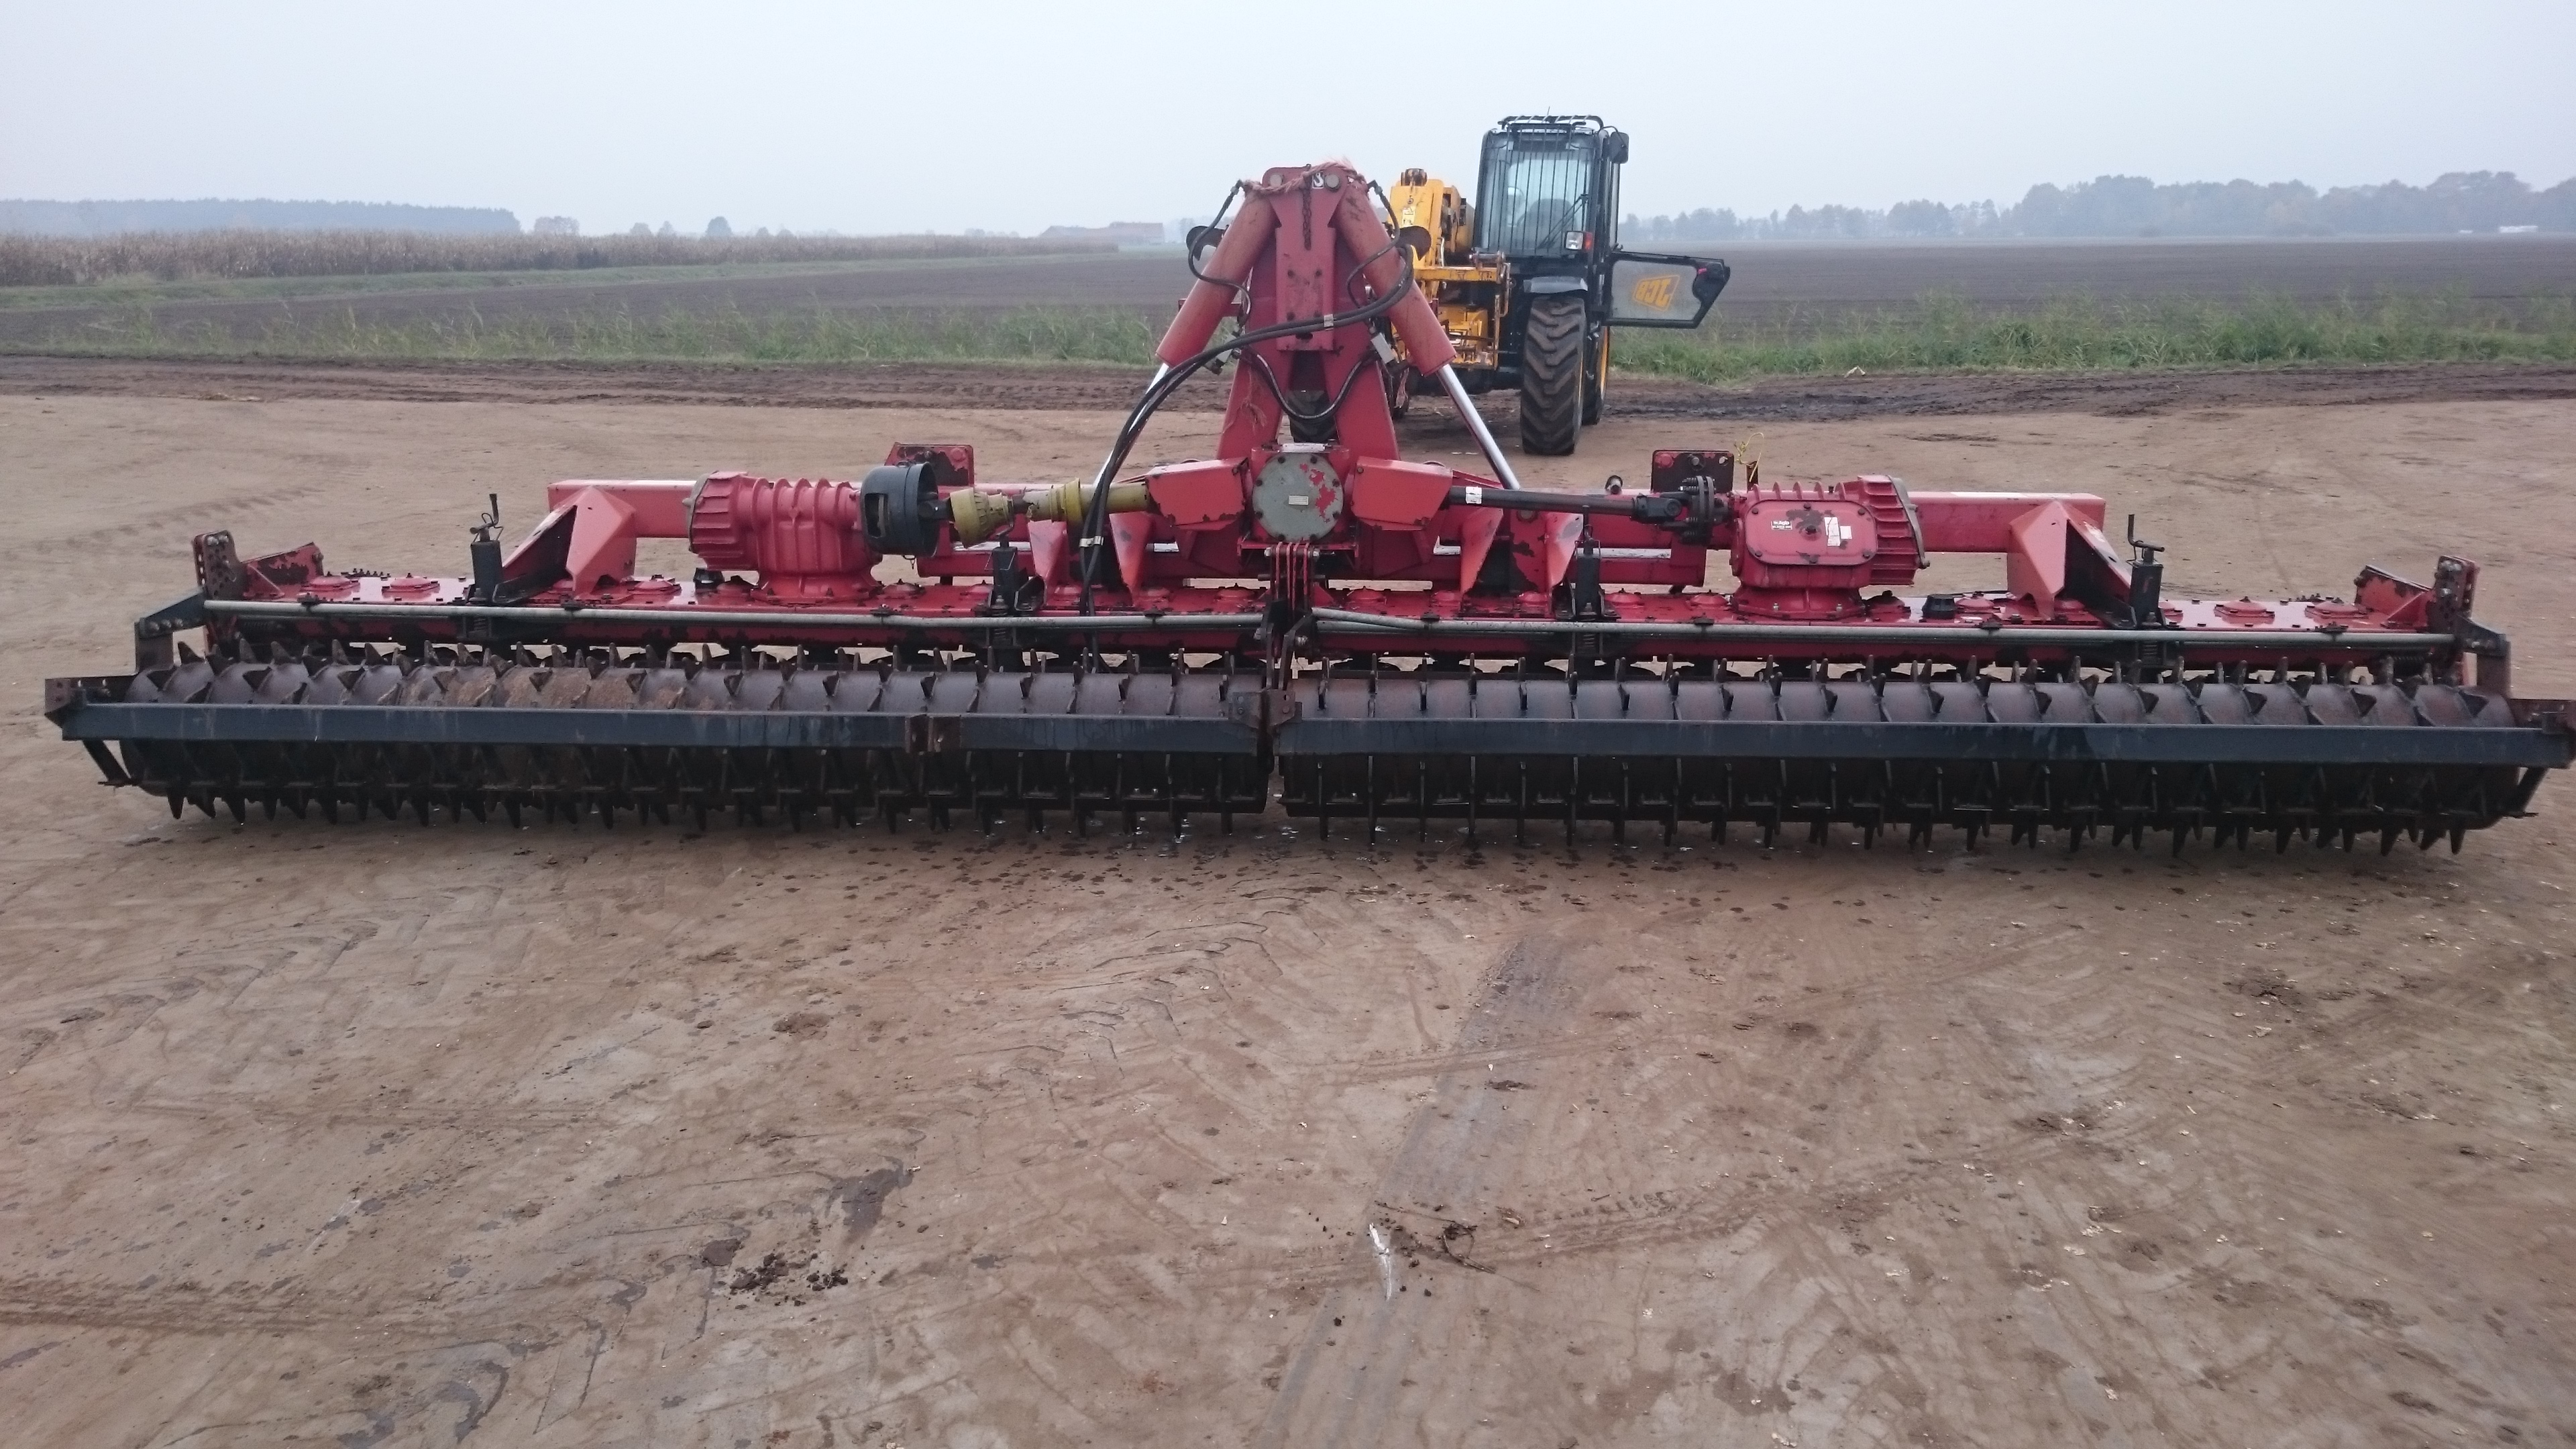 6 metre folding power harrow for sale